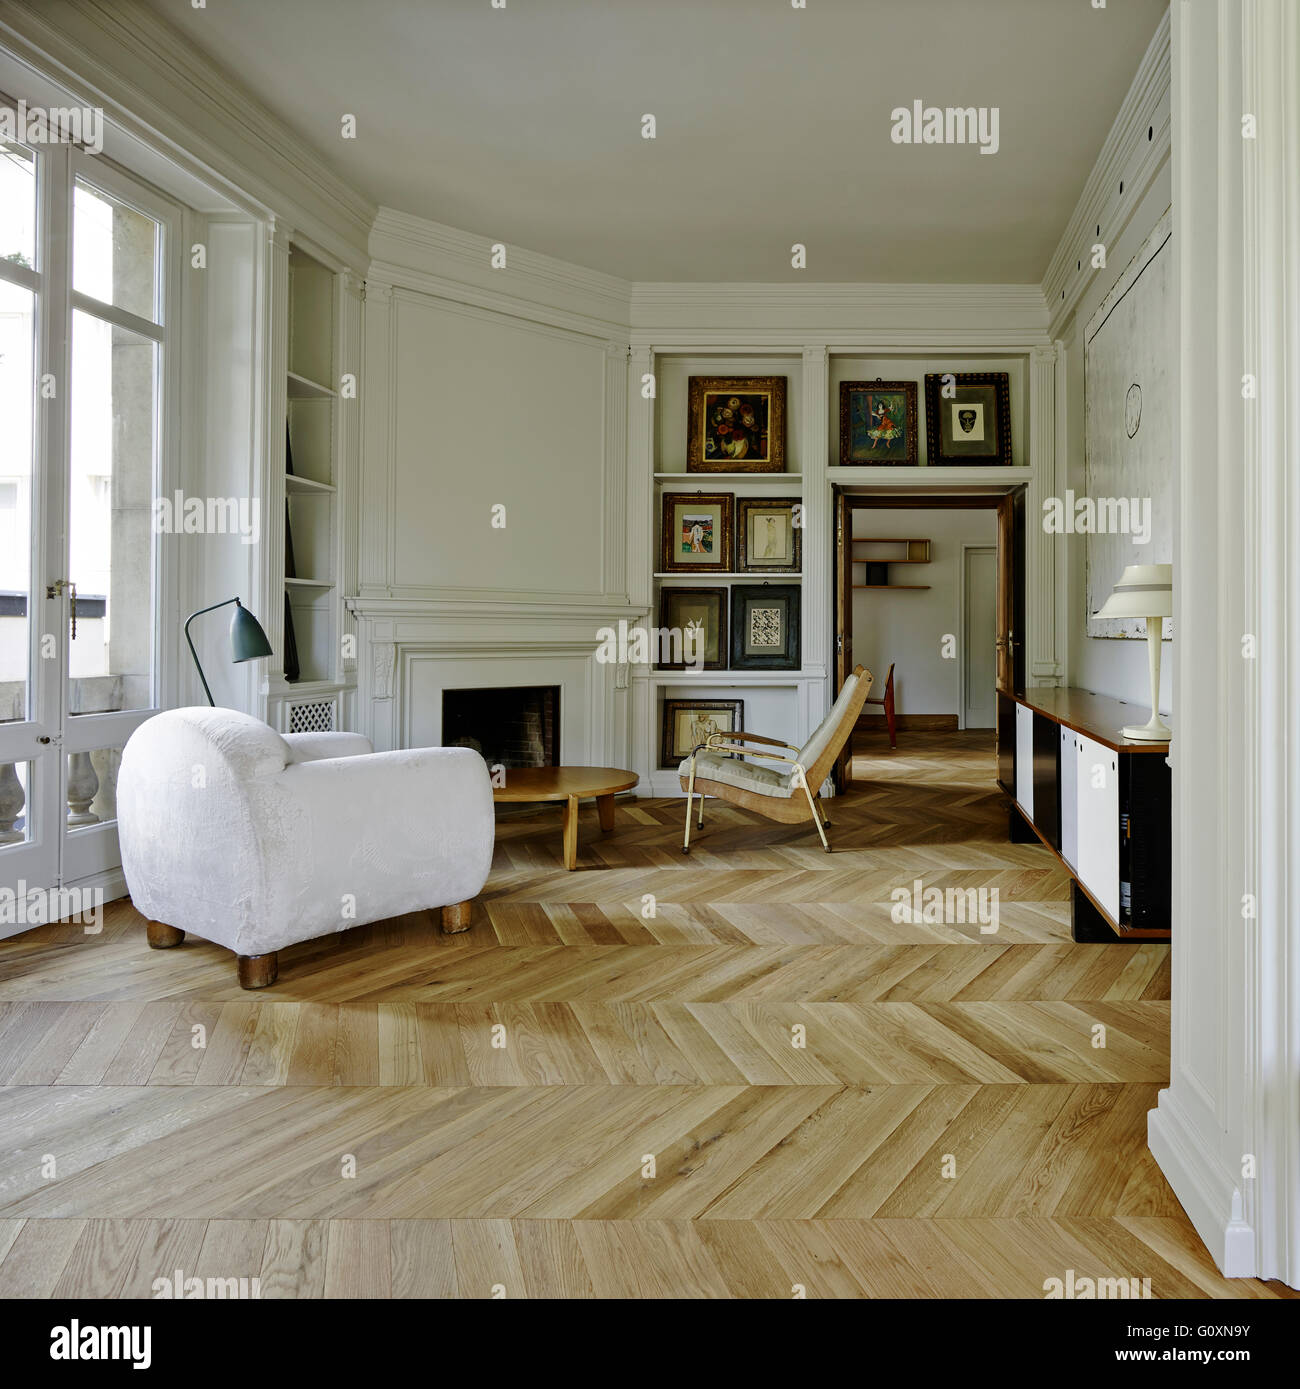 Modern Living Room Flooring Ideas: Spacious, Open Plan Living Room With Parquet Flooring And